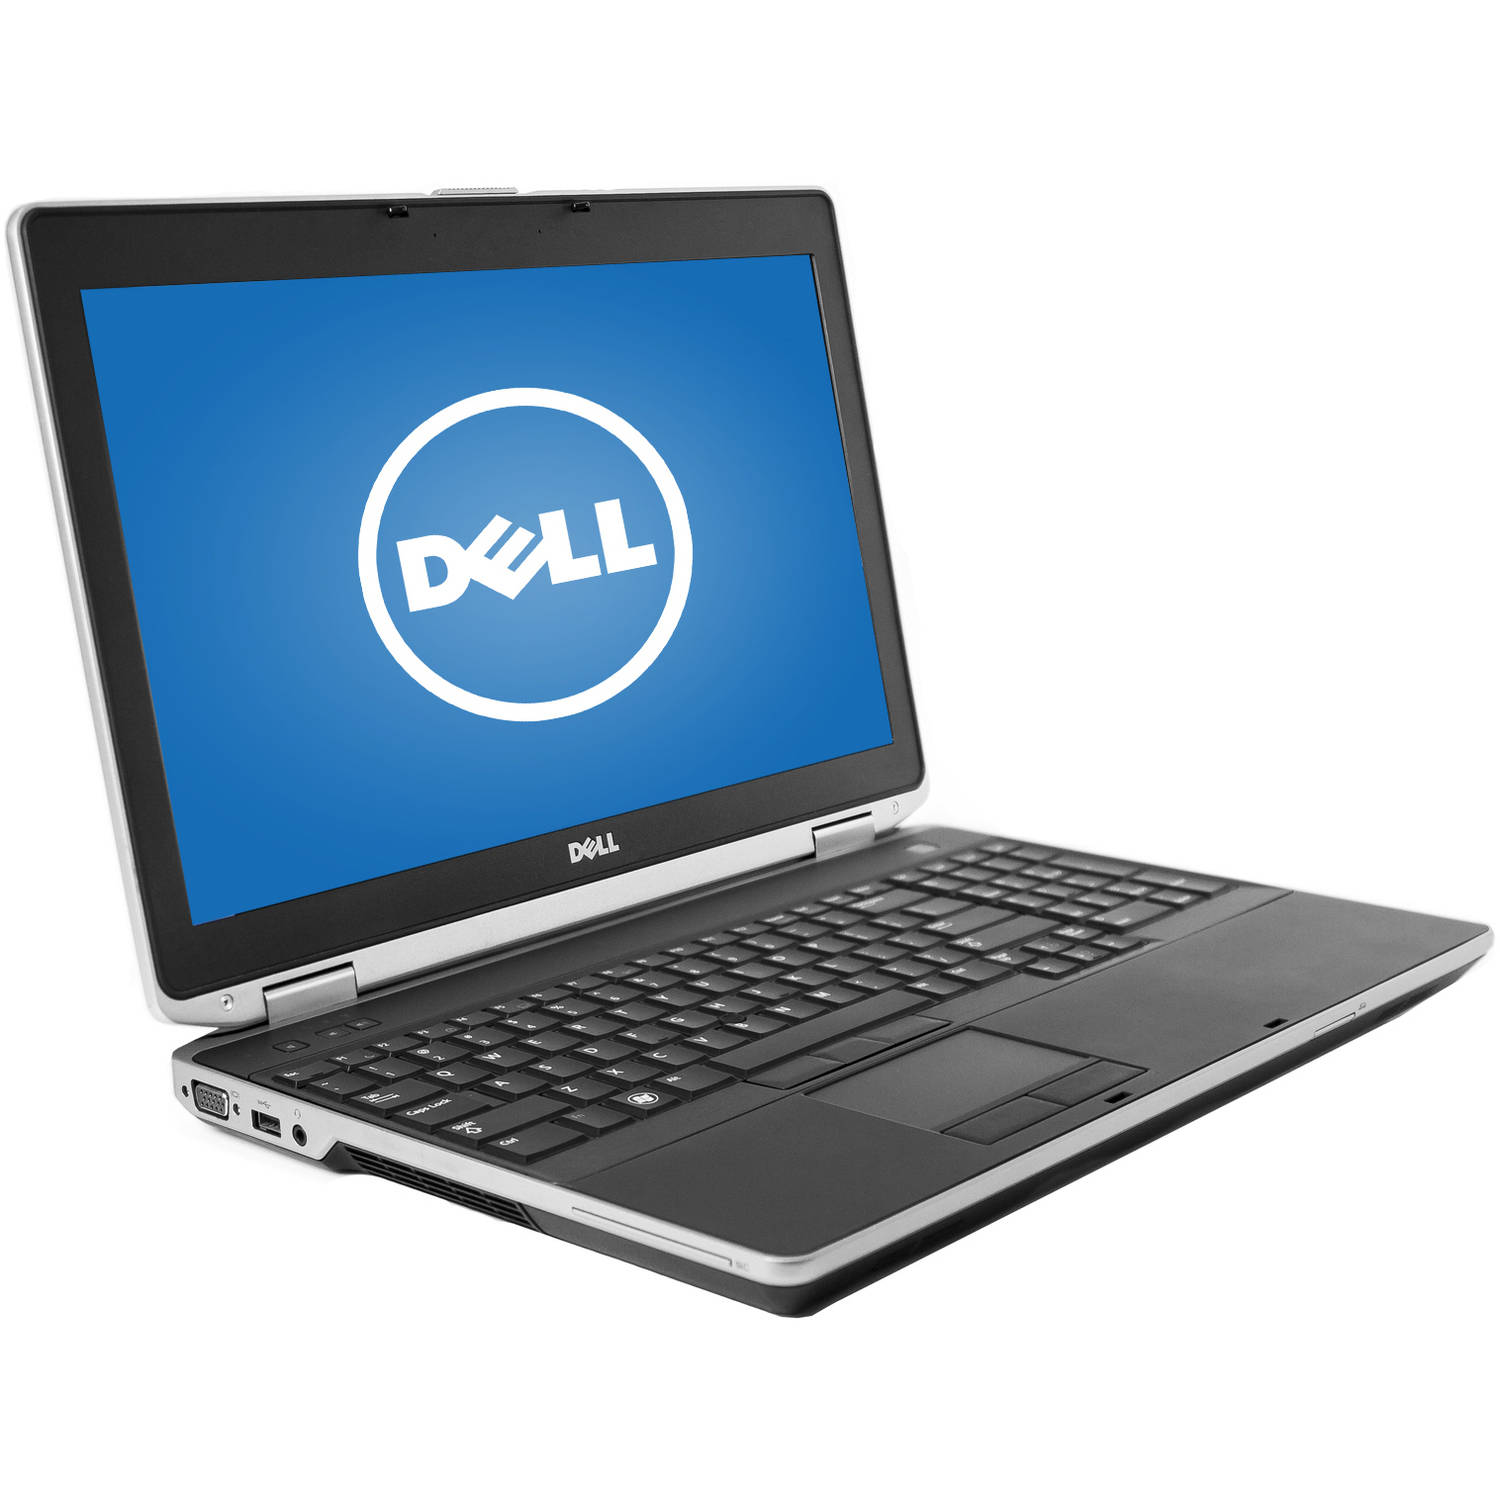 "Refurbished Dell 15.6"" Latitude E6530 Laptop PC with Intel Core i5-3210M Processor, 4GB Memory, 128GB Solid State Drive and Windows 10 Pro"